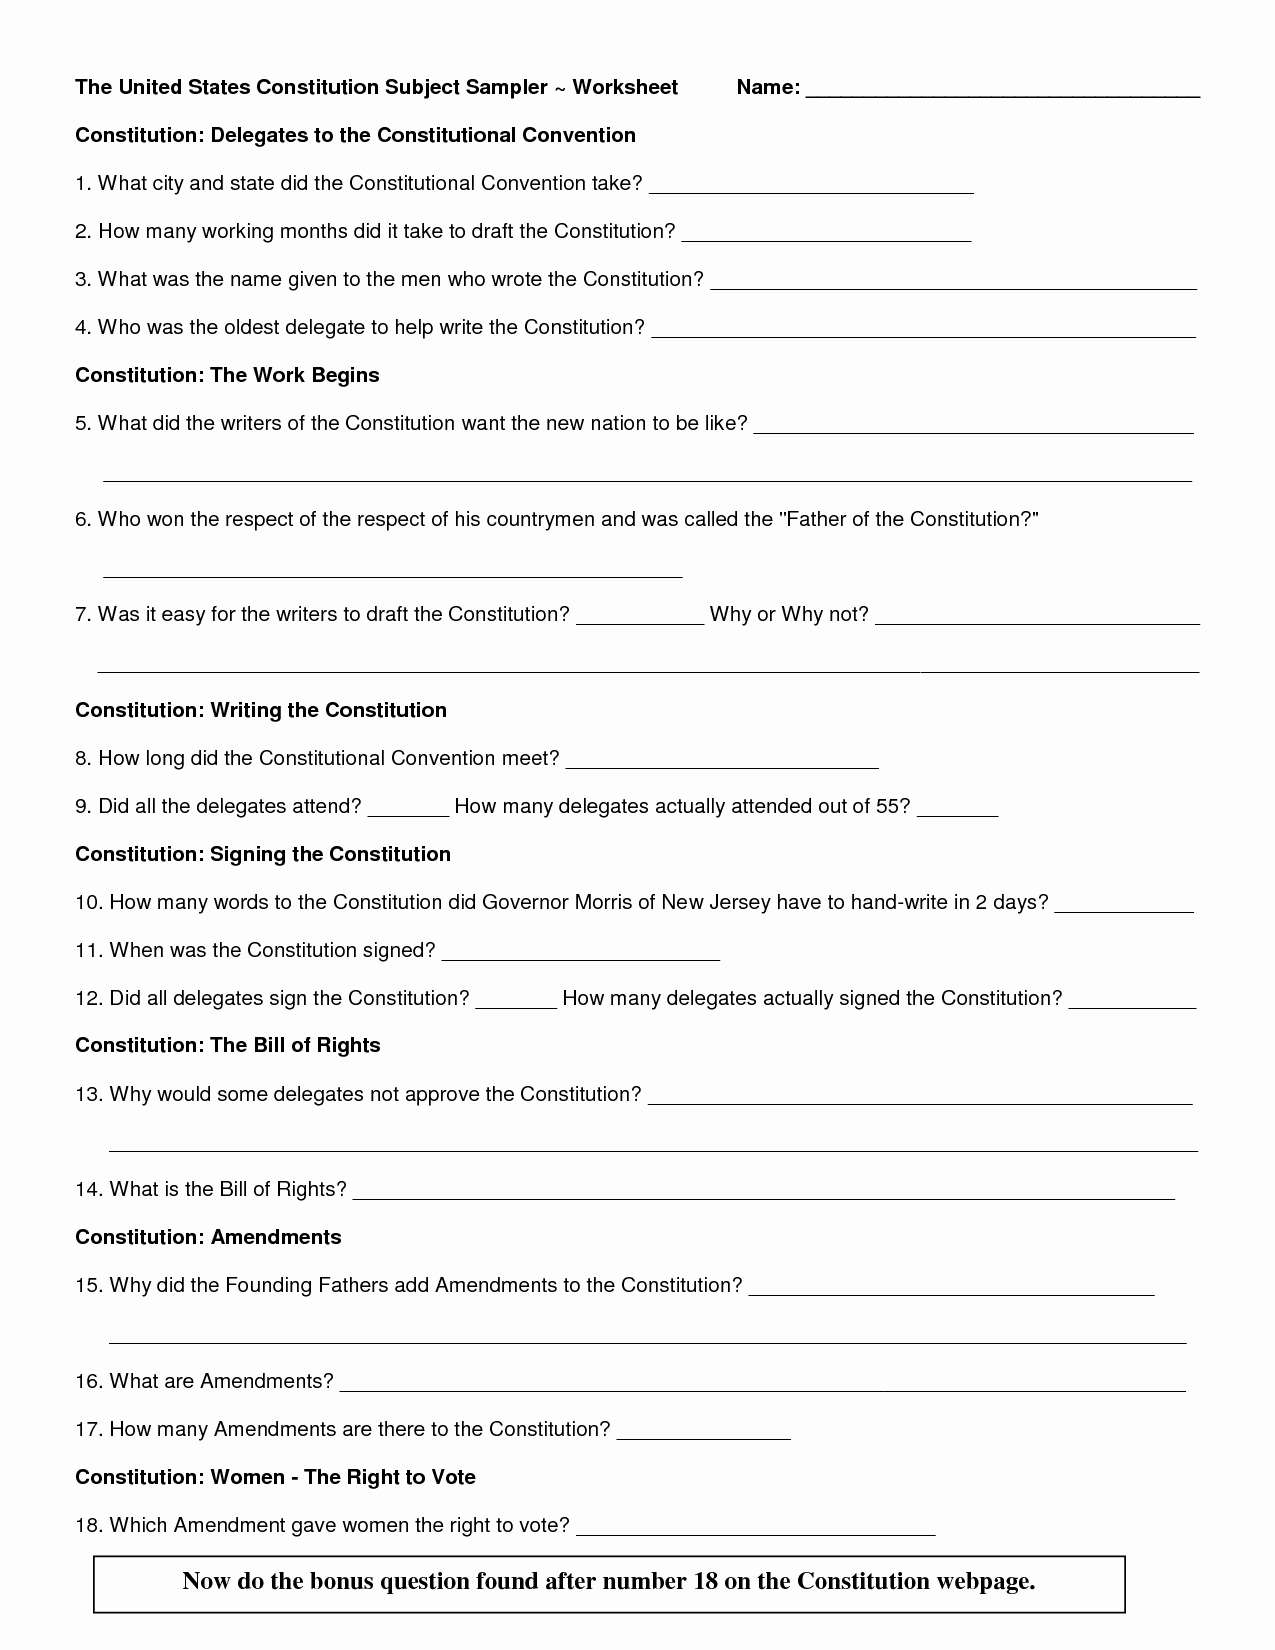 The Us Constitution Worksheet Luxury the Us Constitution Worksheet Virginia Plan